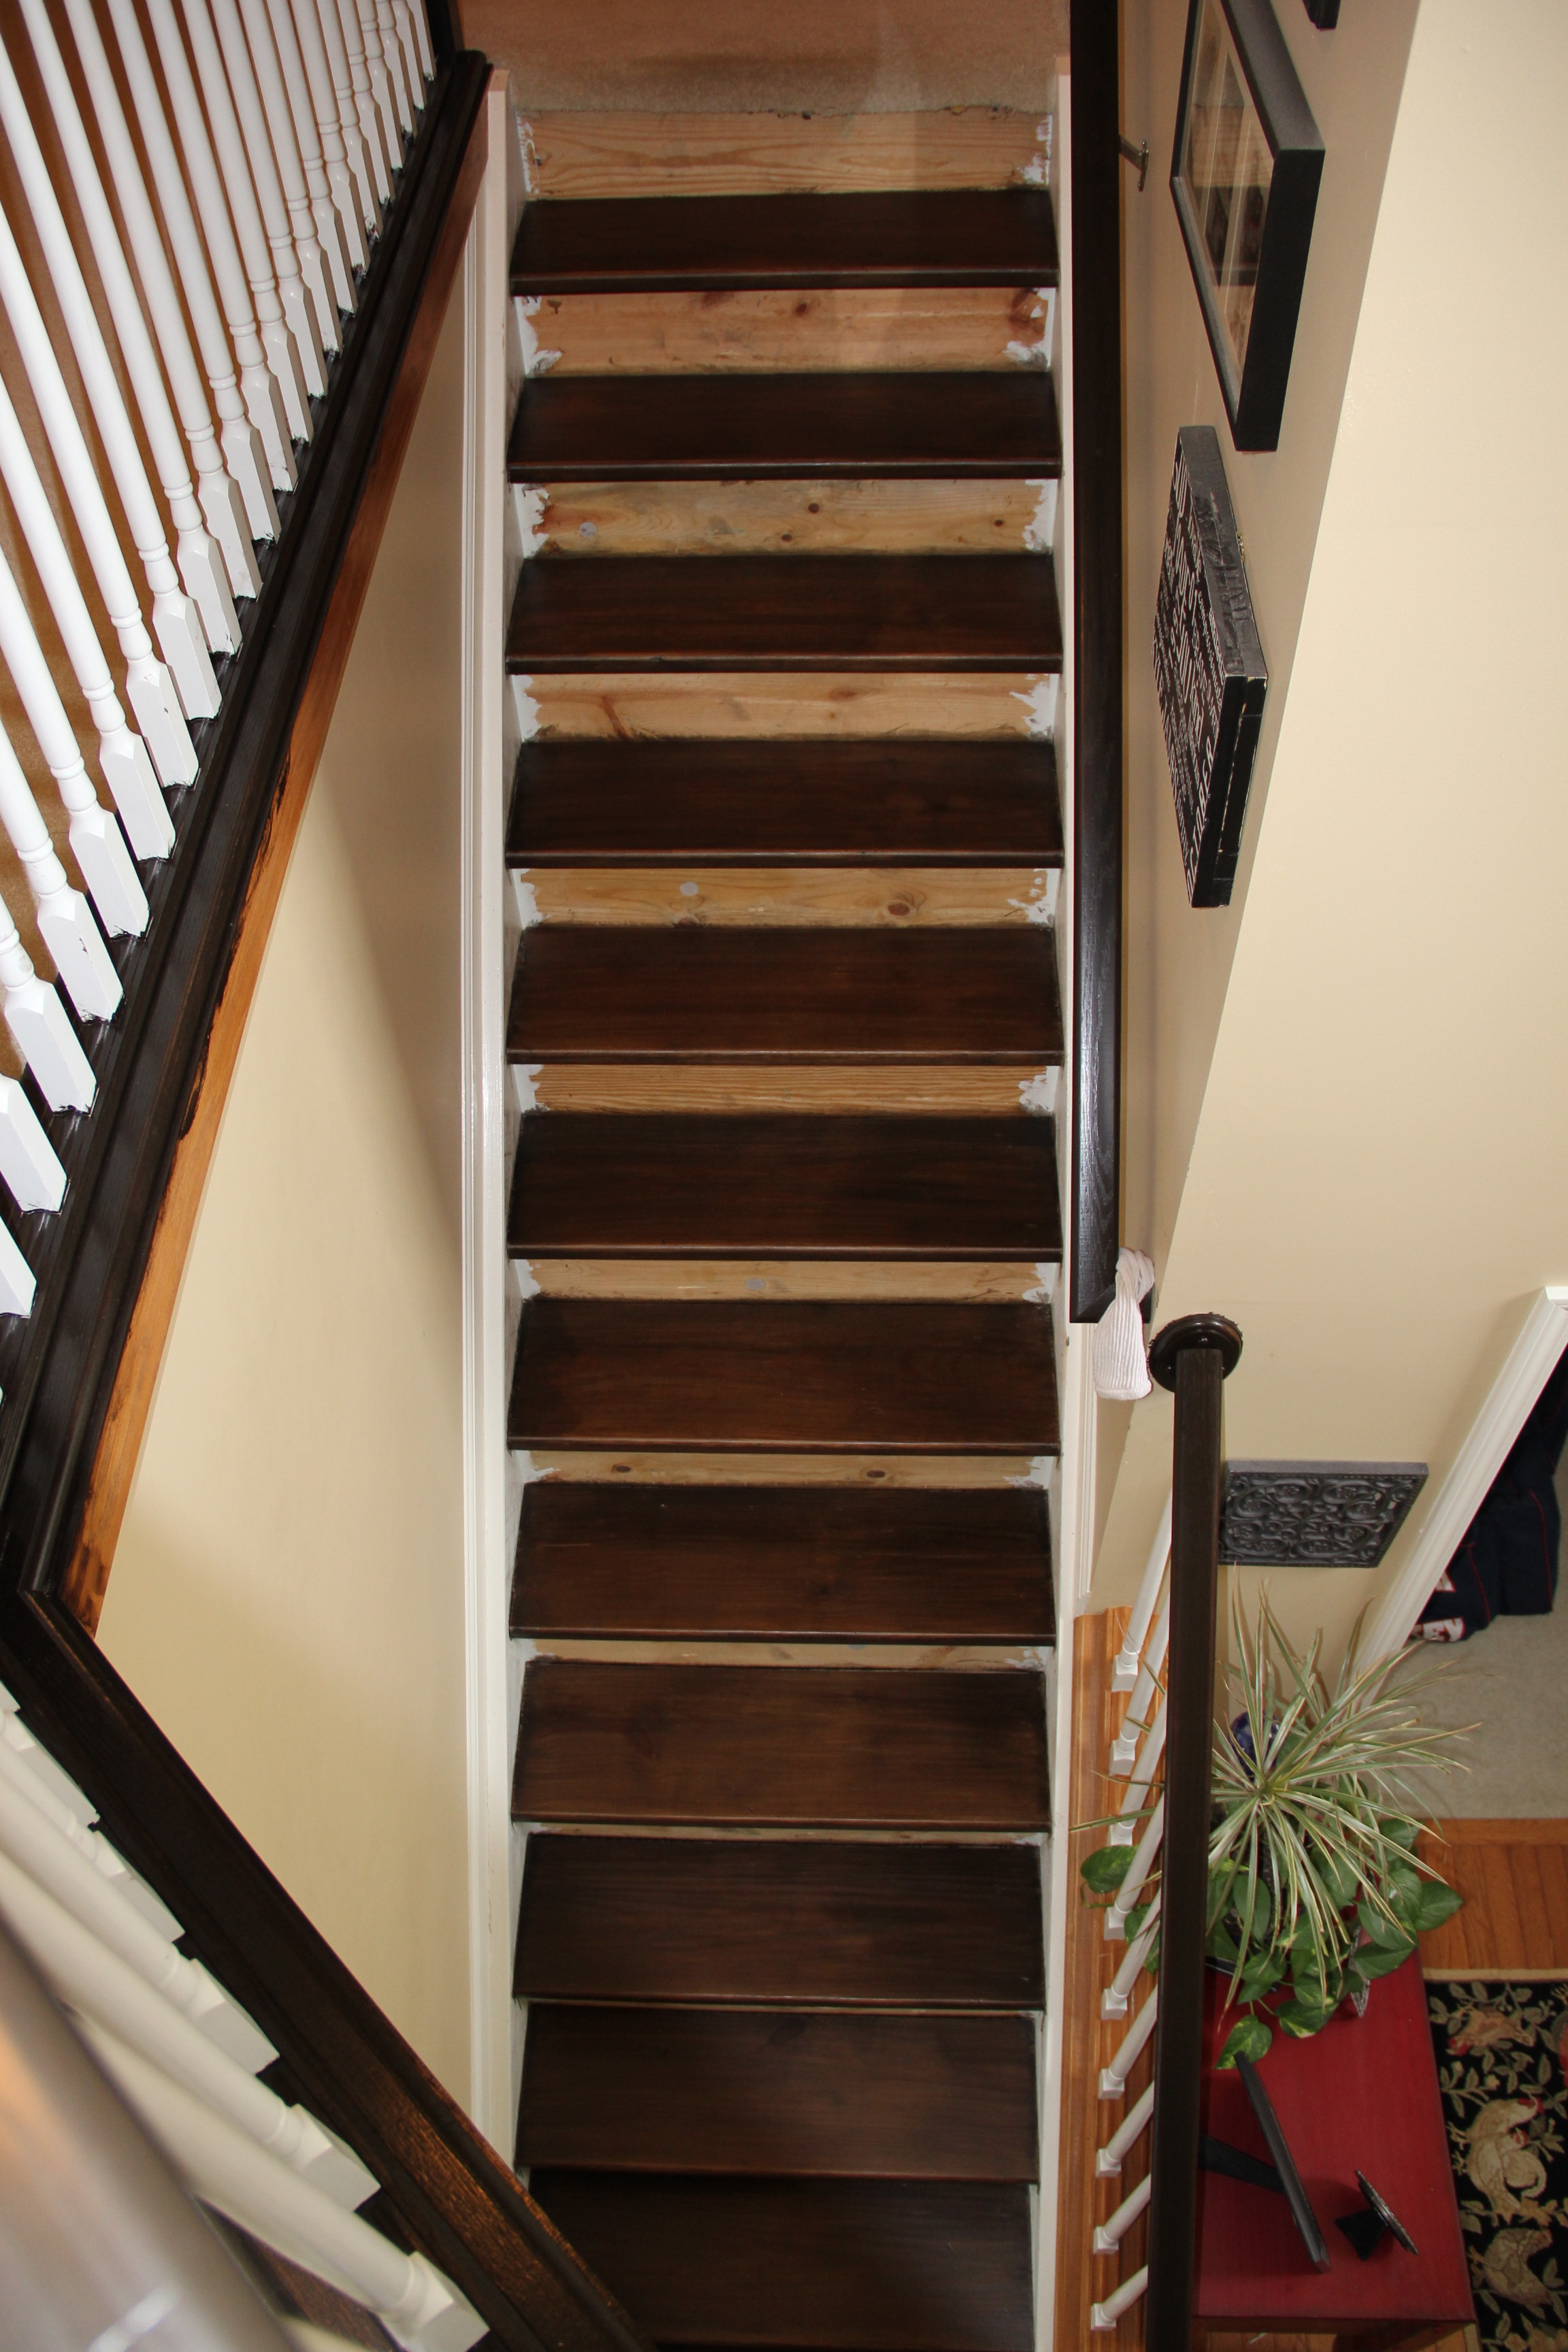 Staining Pine Stair Treads Tempting Thyme In Stair Treads For Wooden Stairs (View 11 of 20)